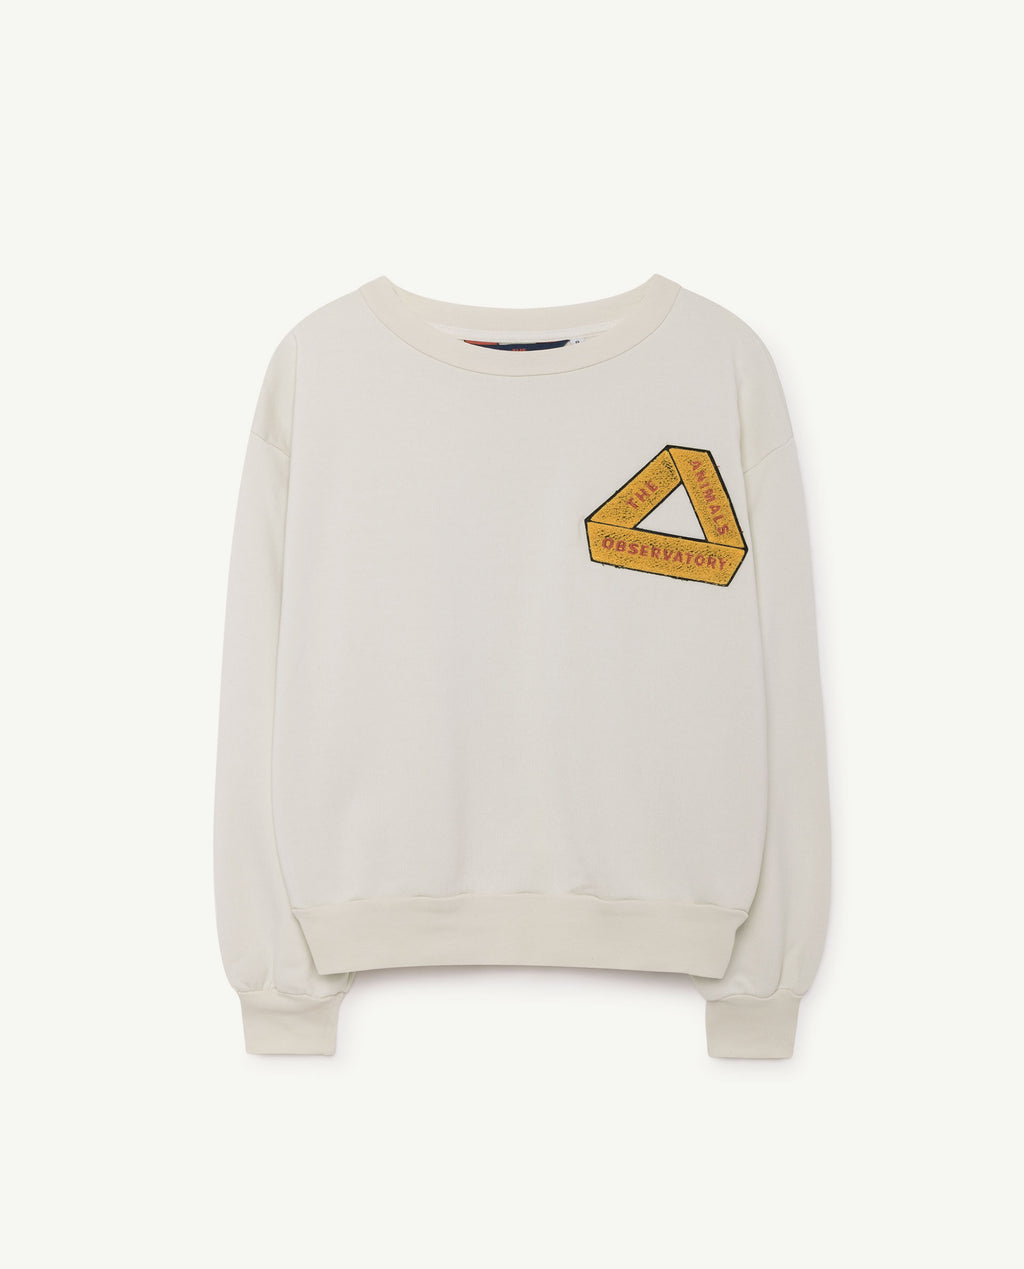 The Animals Observatory Bear Sweater - White/Yellow triangle